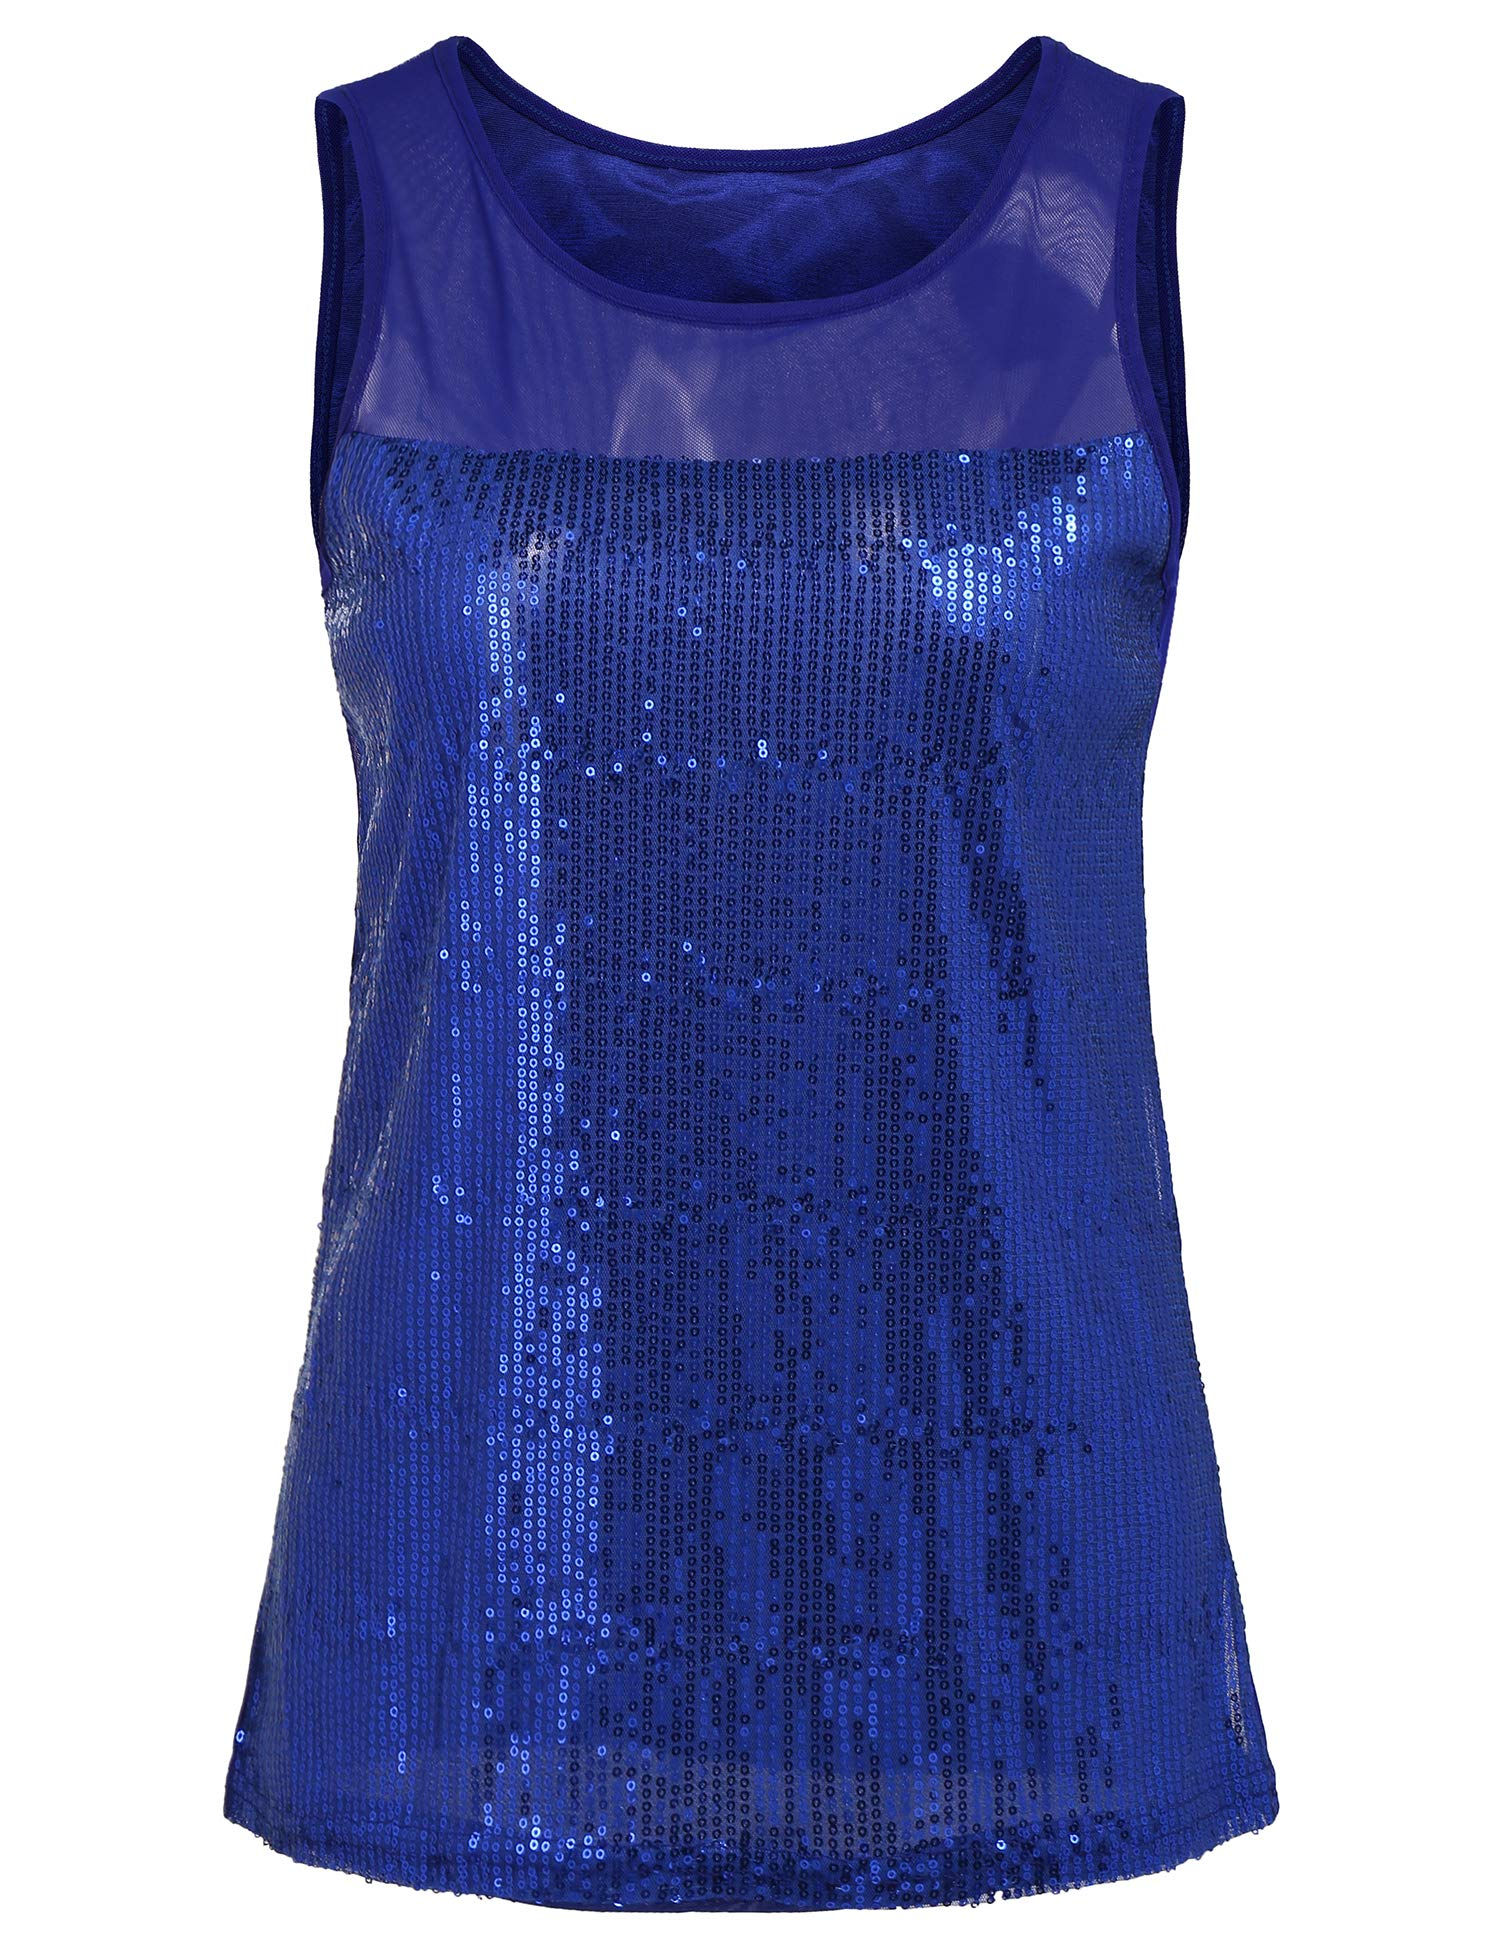 67666fdb244caa Womens Shimmer Glam Sequin Embellished Sparkle Tank Top Vest Tops  Sleeveless Casual Blouse (Royal Blue